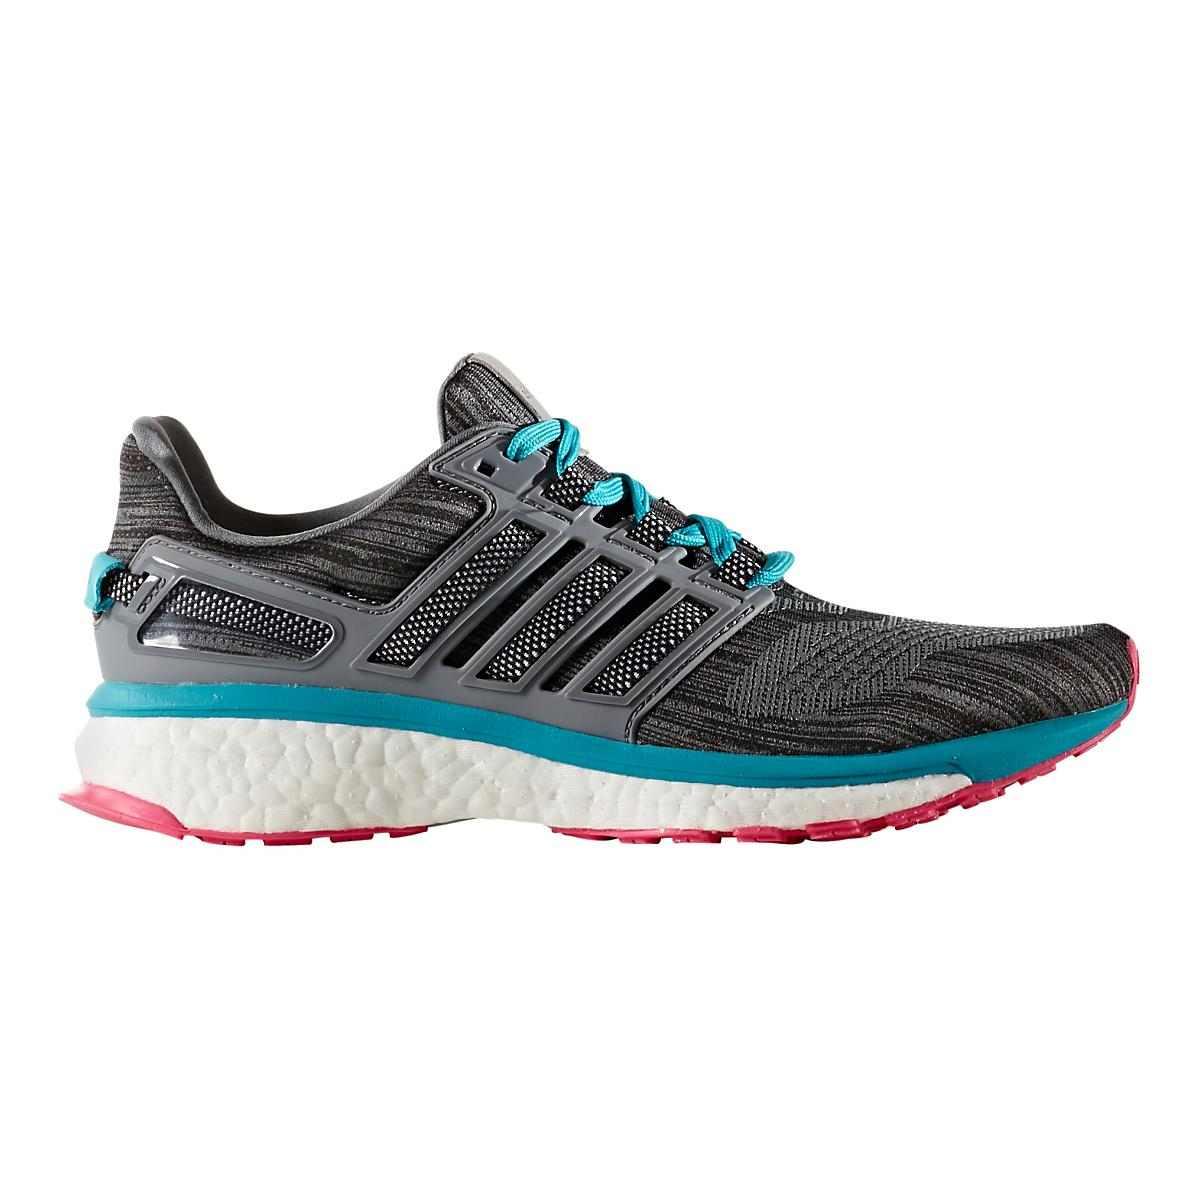 2f7a73ed14a2 Womens adidas Energy Boost 3 Running Shoe at Road Runner Sports